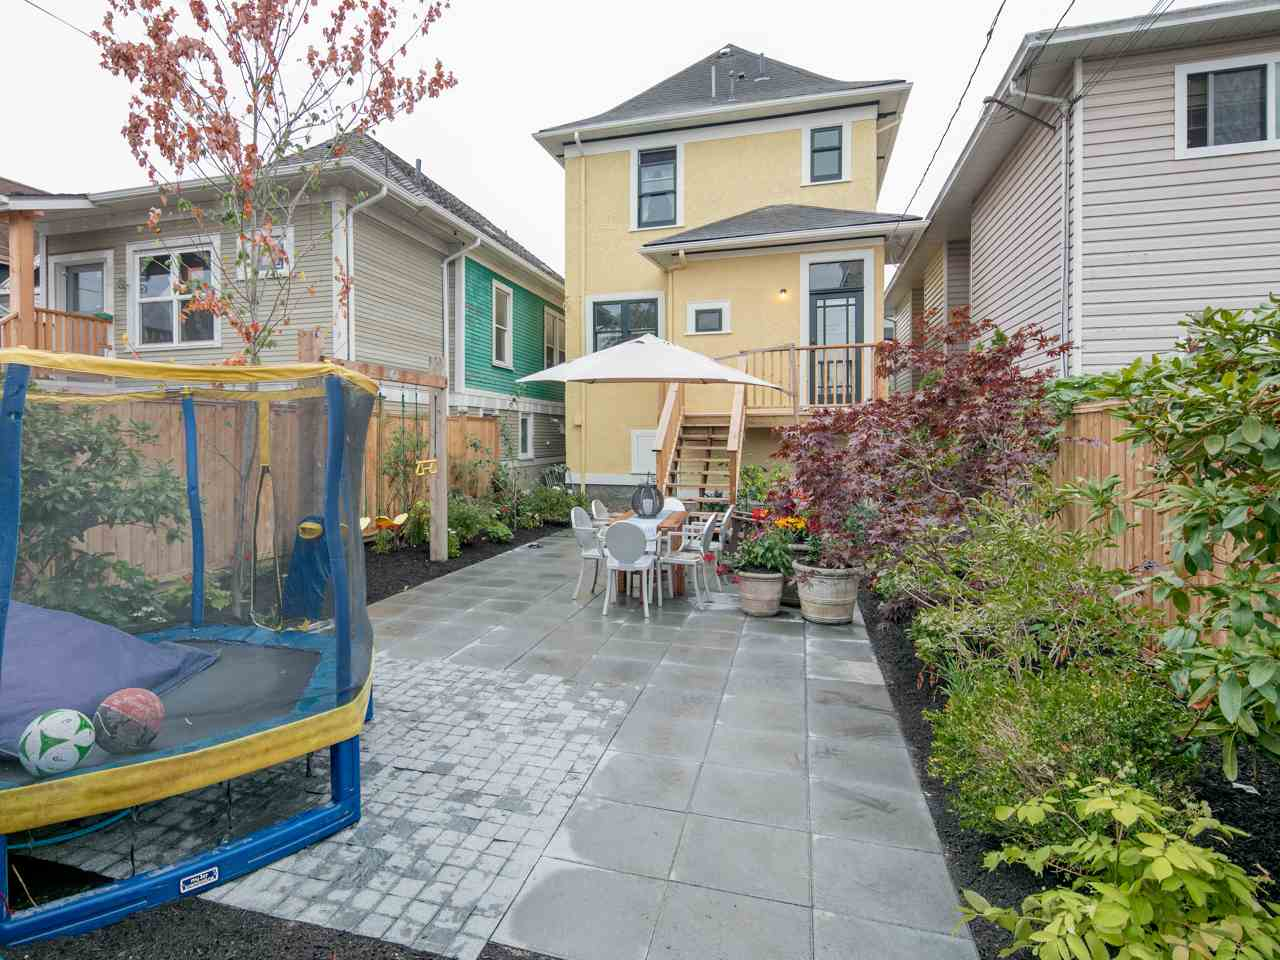 Photo 17: 1137 E PENDER Street in Vancouver: Mount Pleasant VE House for sale (Vancouver East)  : MLS® # R2204220